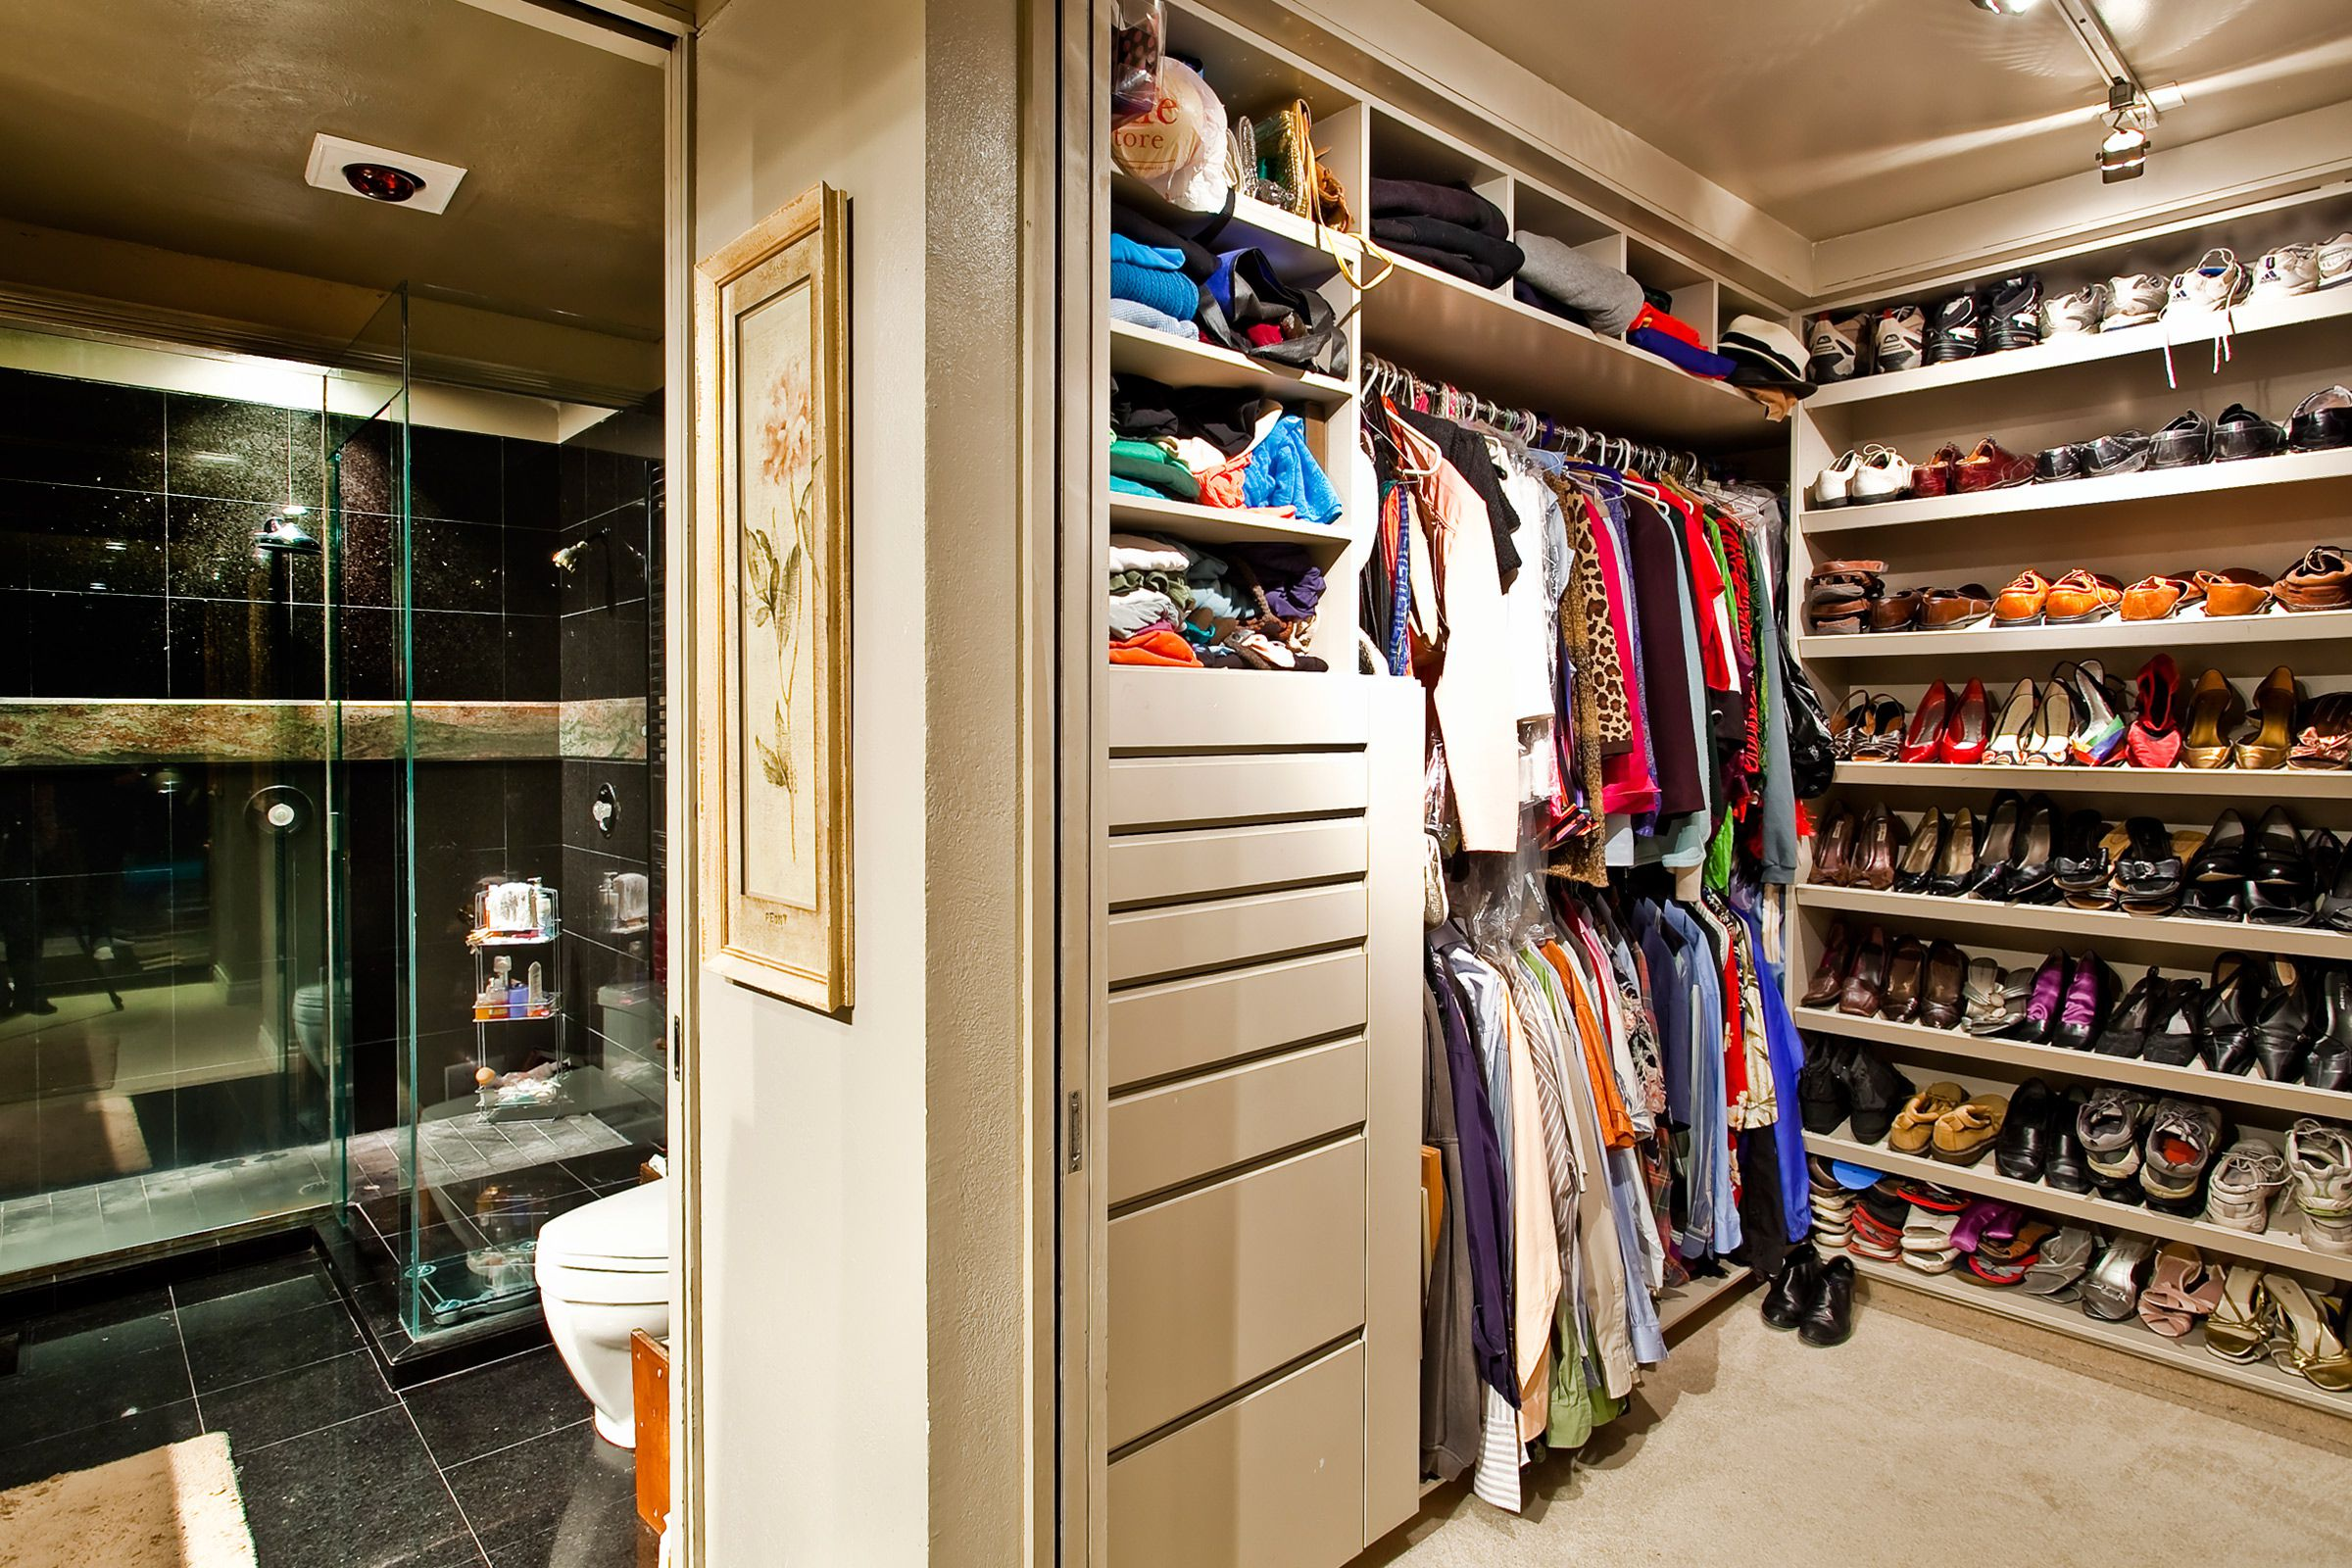 appealing shoes racks also hanging clothes to decorate small closet design ideas small closet design - Ikea Closet Design Ideas